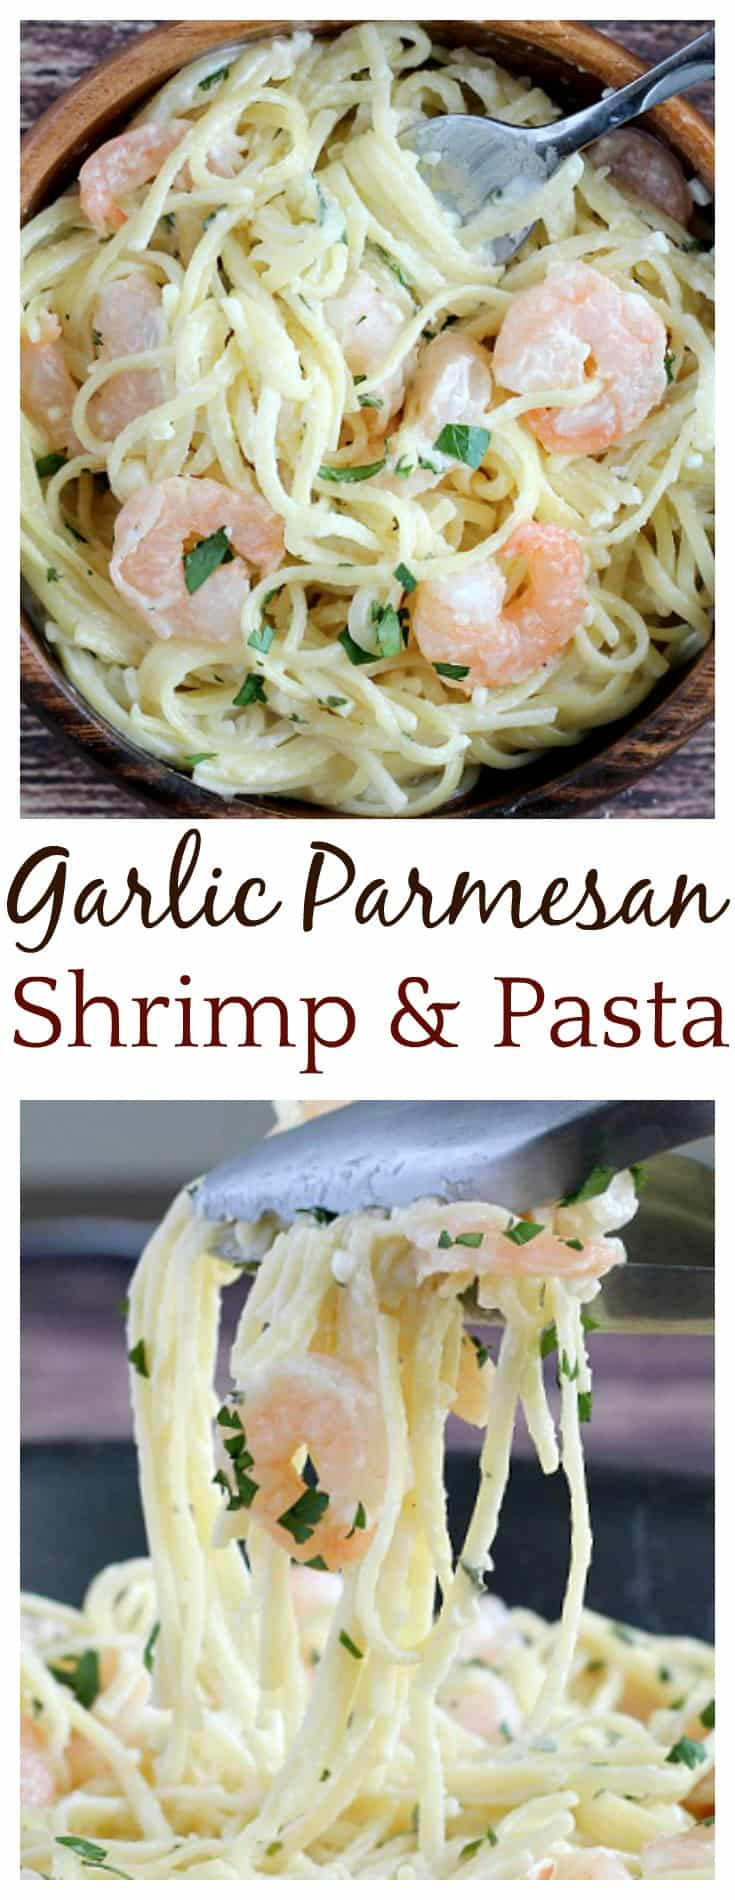 20 Minutes is all it takes to get this creamy, delicious Garlic Parmesan Shrimp and Pasta recipe on the table! It's a family friendly recipe that's perfect for busy weeknights!